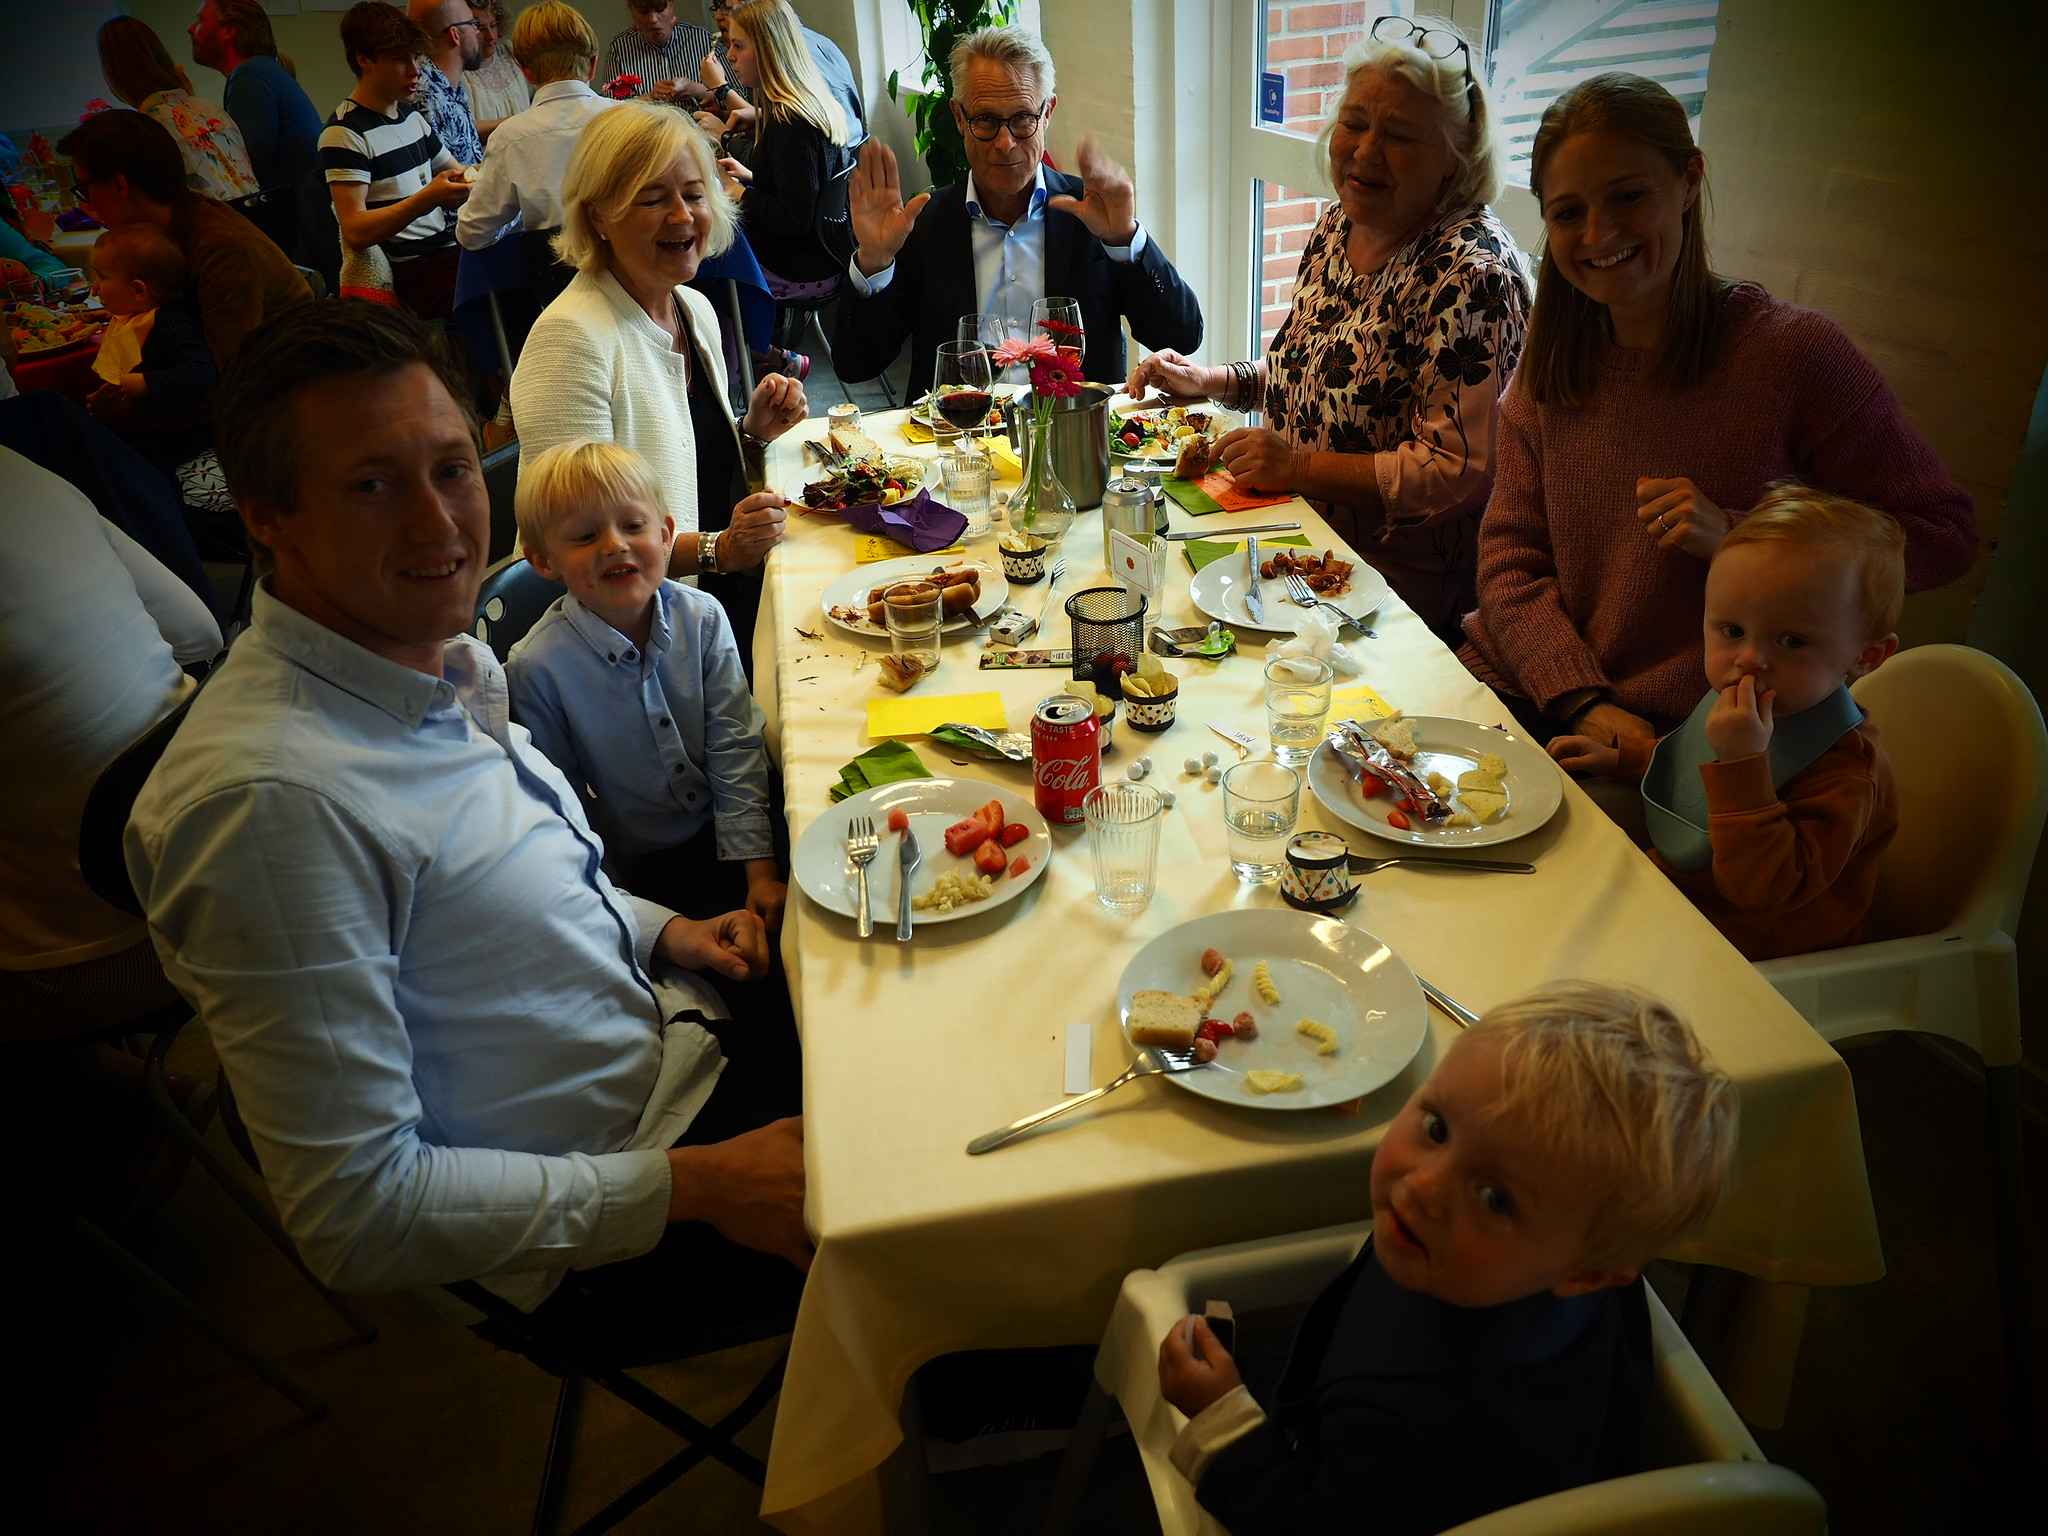 Ólivers konfirmation